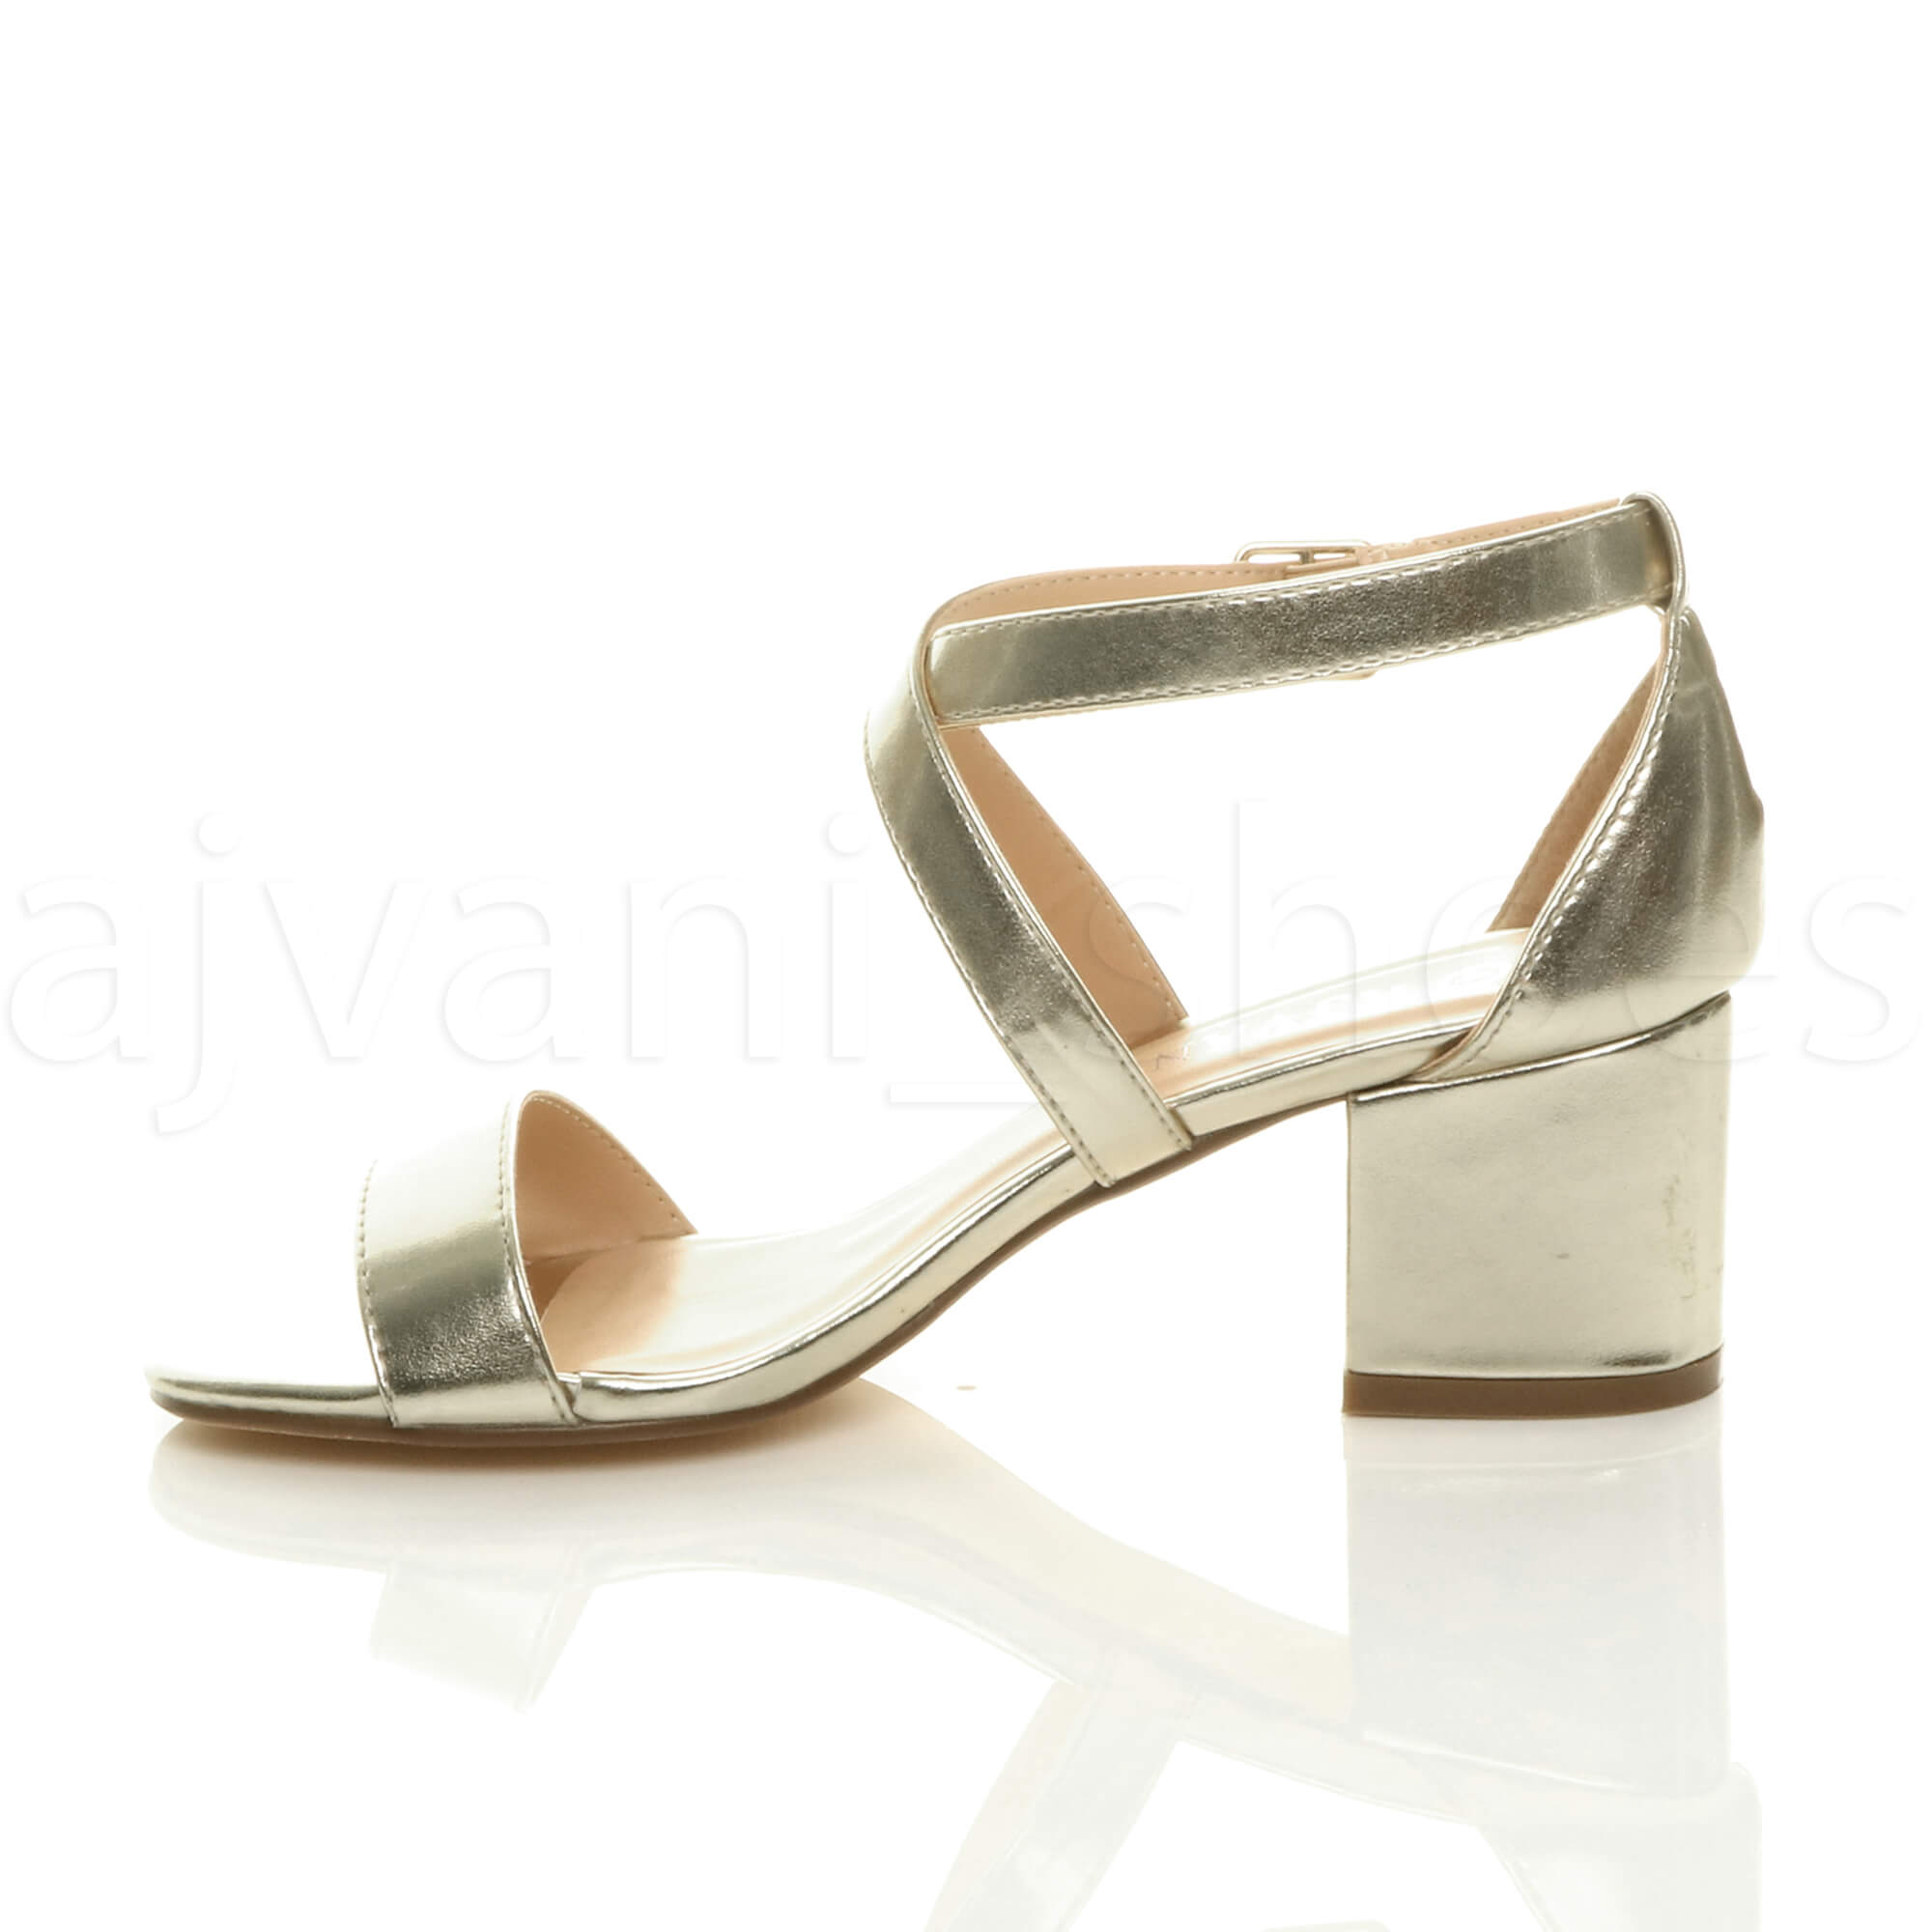 WOMENS-LADIES-MID-LOW-BLOCK-HEEL-CROSS-STRAPS-PARTY-STRAPPY-SANDALS-SHOES-SIZE thumbnail 31